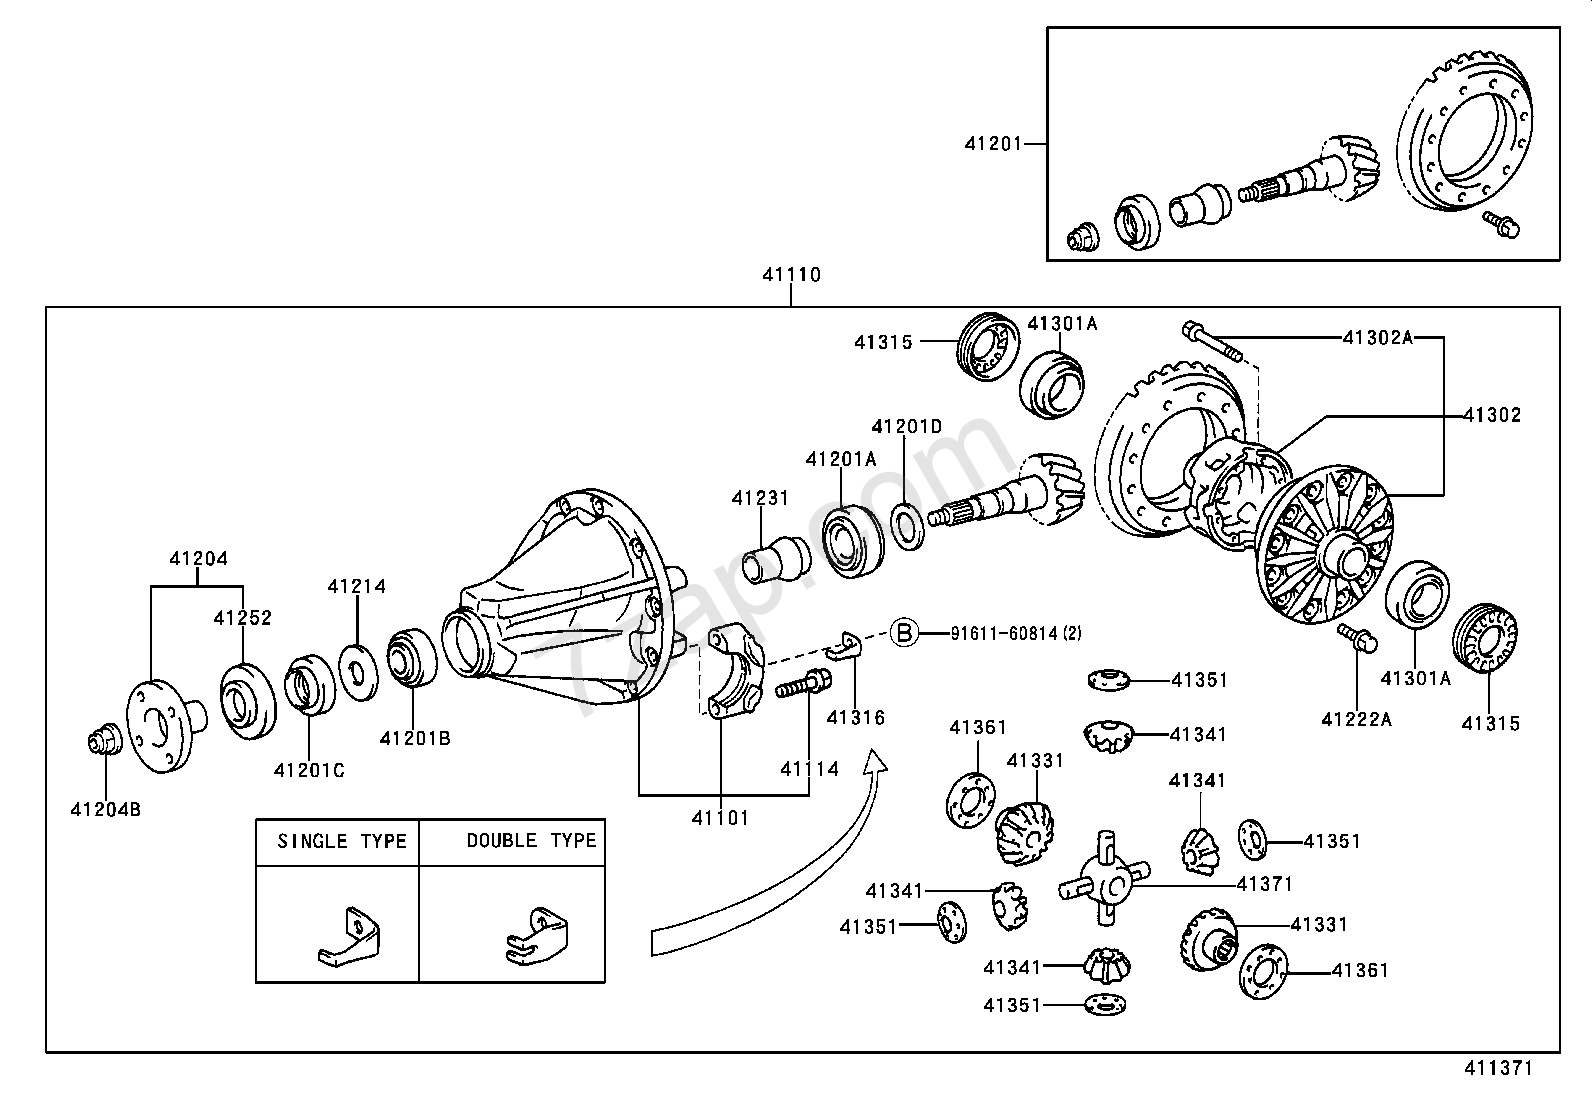 rear axle housing  u0026 differential  illust no  1 of 3 0105